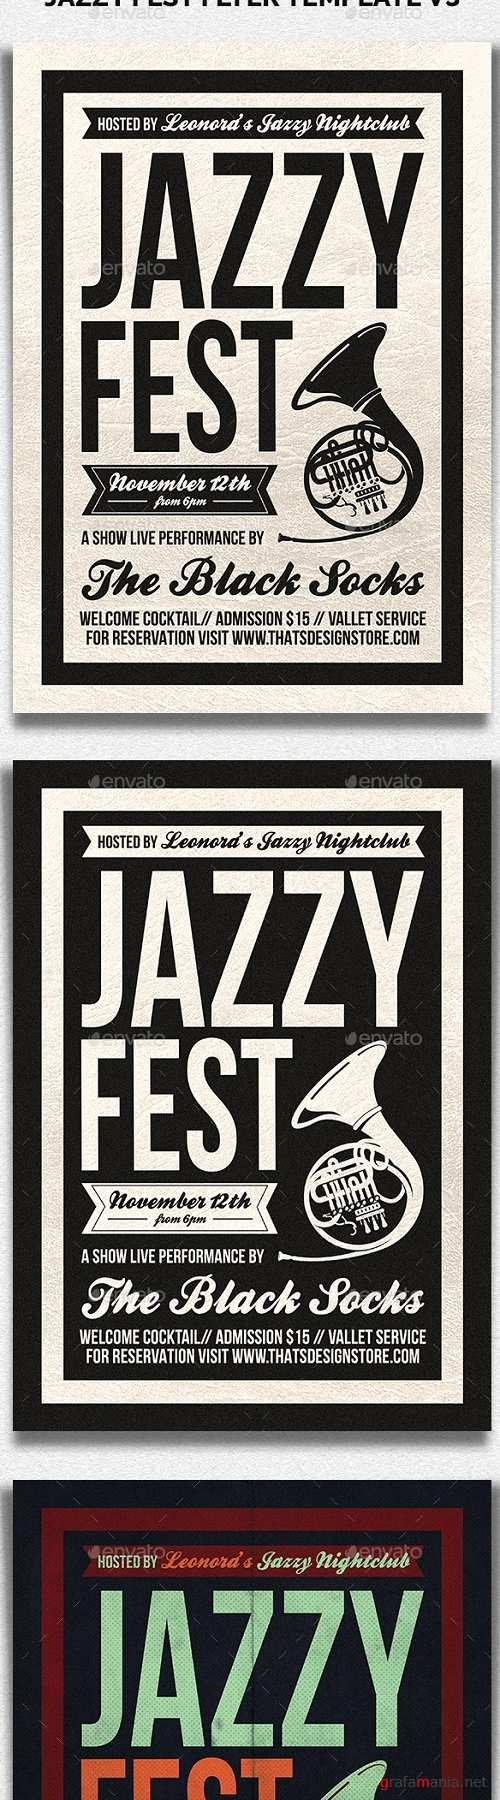 Jazzy Fest Flyer Template V3 - 20032694